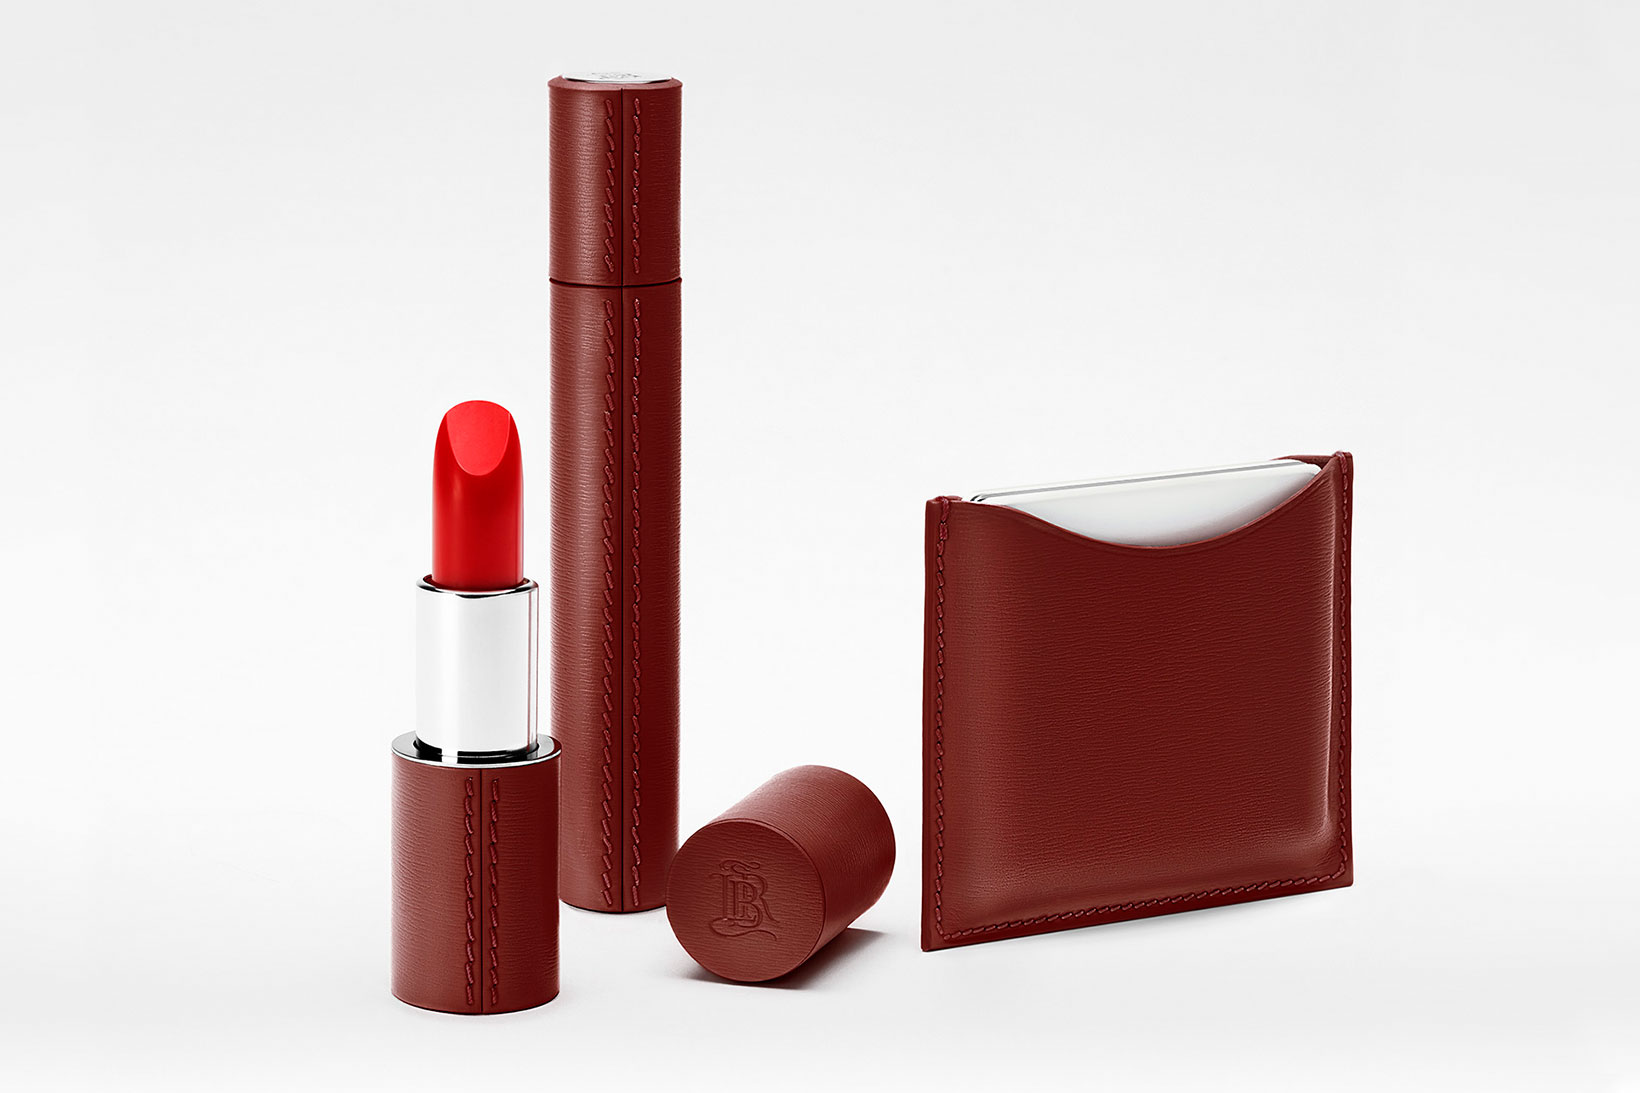 la-bouche-rouge-sustainable-clean-beauty-makeup-launch-2